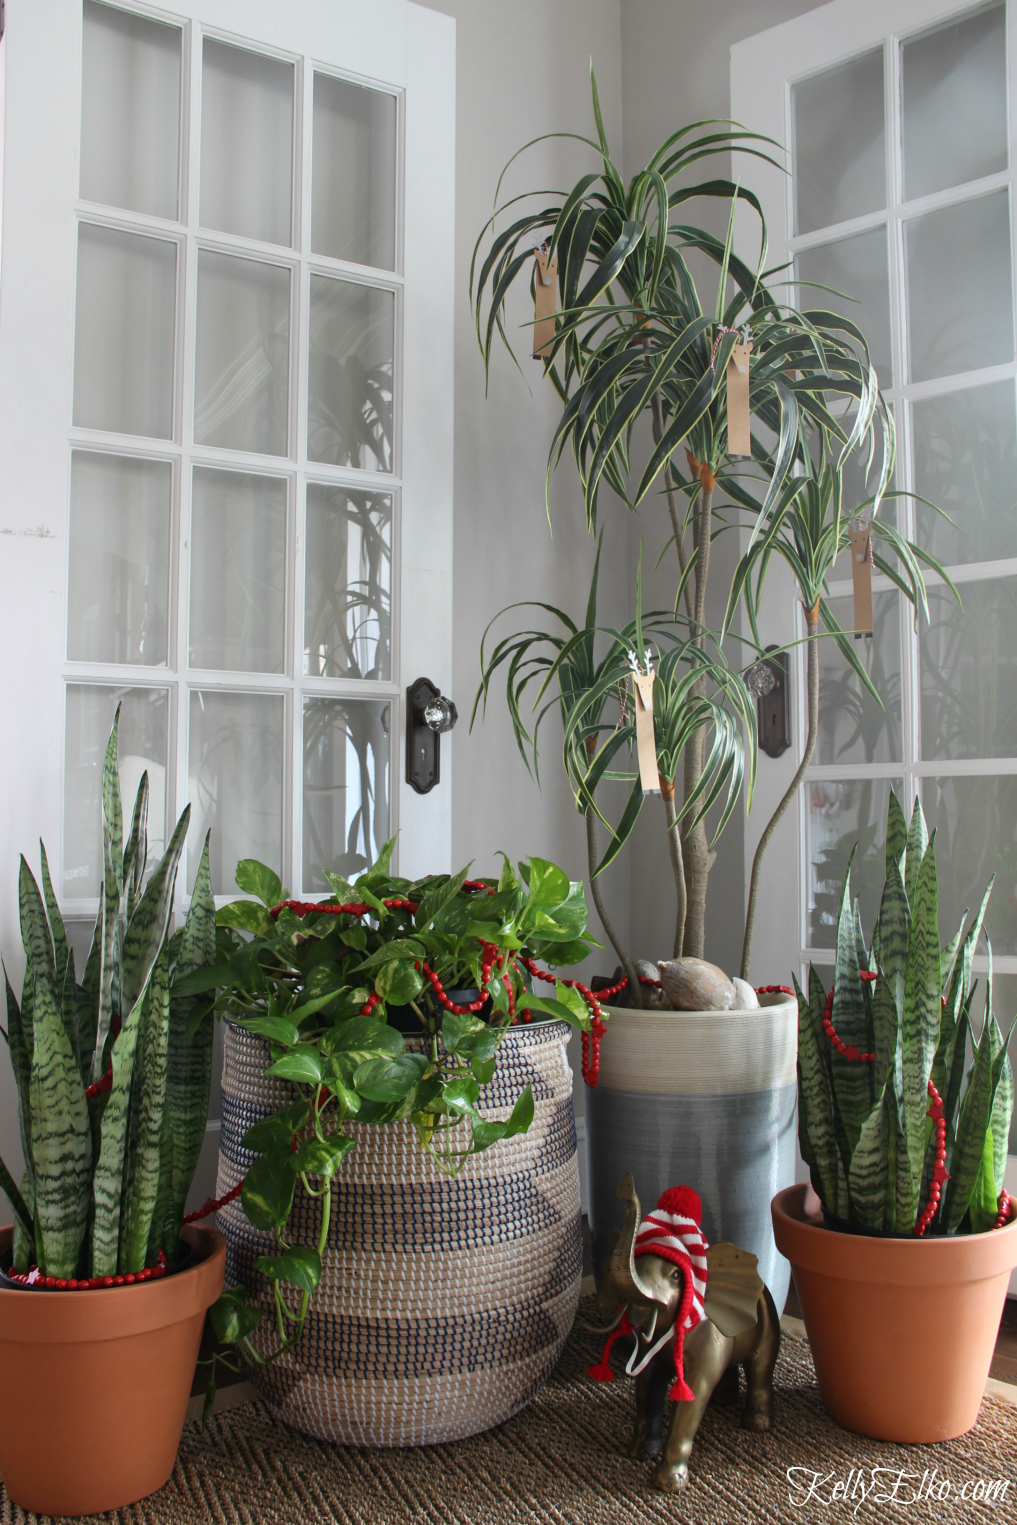 Simple Christmas decorating ideas - love the garland and ornaments in these everyday plants kellyelko.com